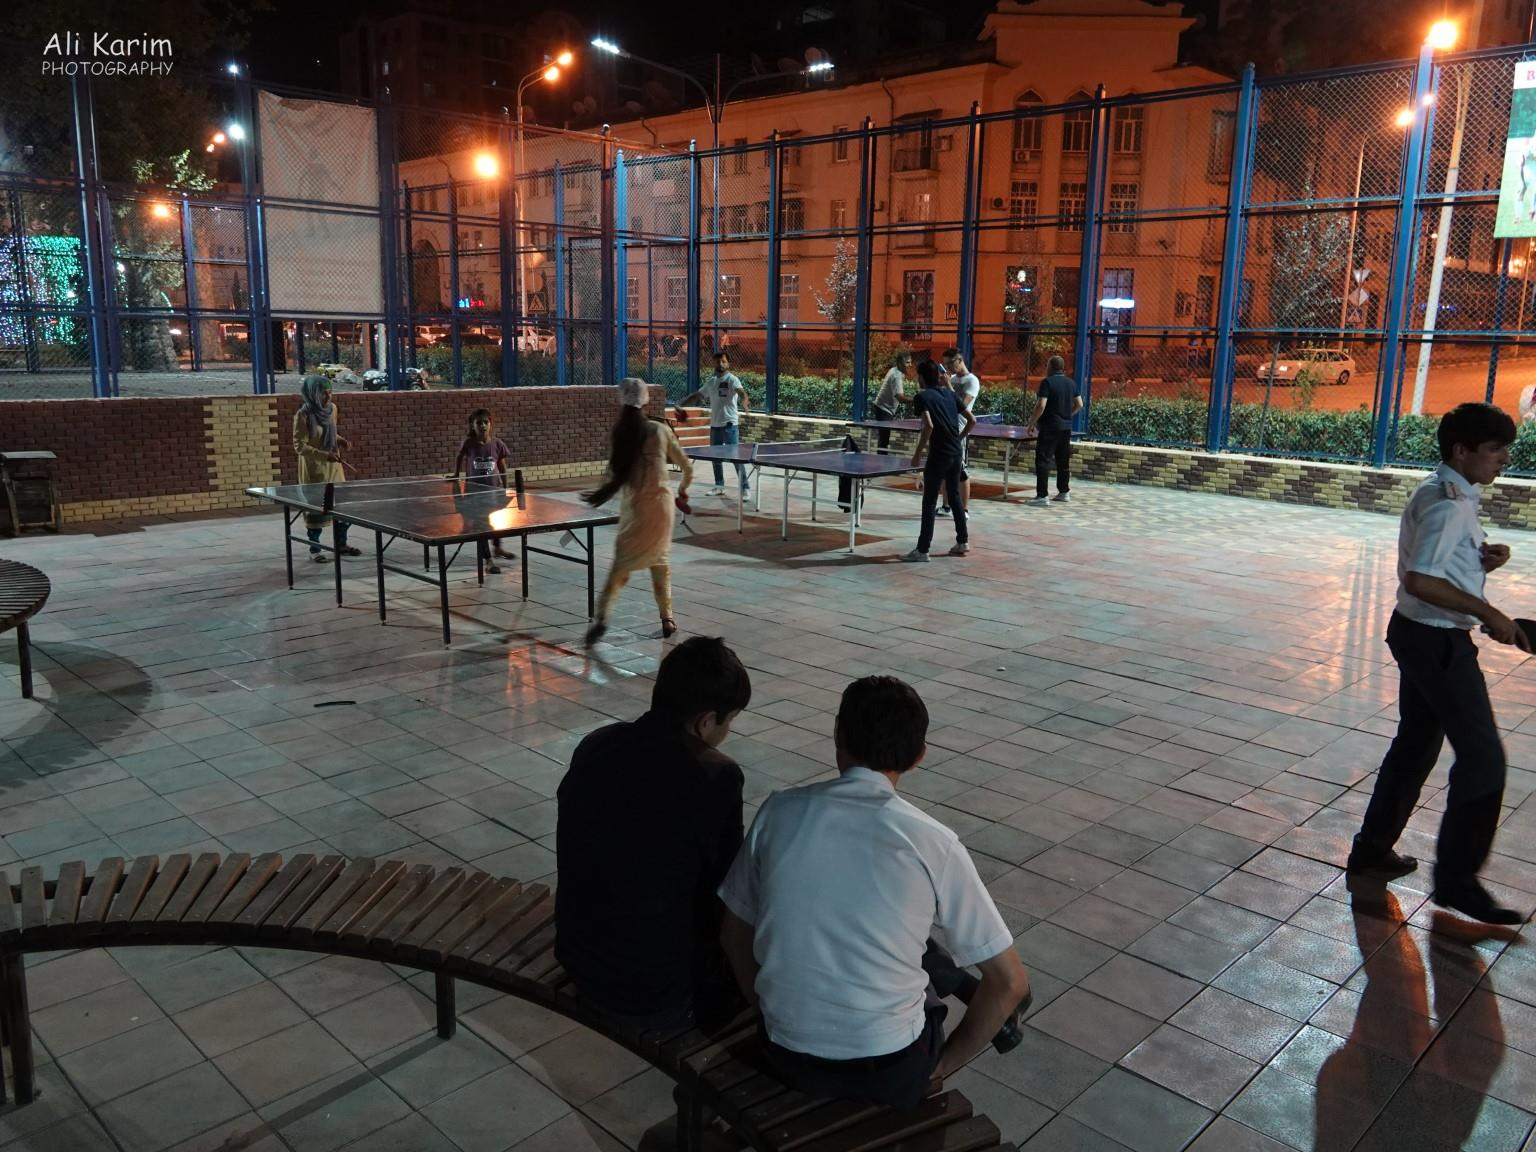 Dushanbe, Tajikistan Locals enjoying table tennis and indoor soccer inside one of the parks, at night, with families. Very safe.